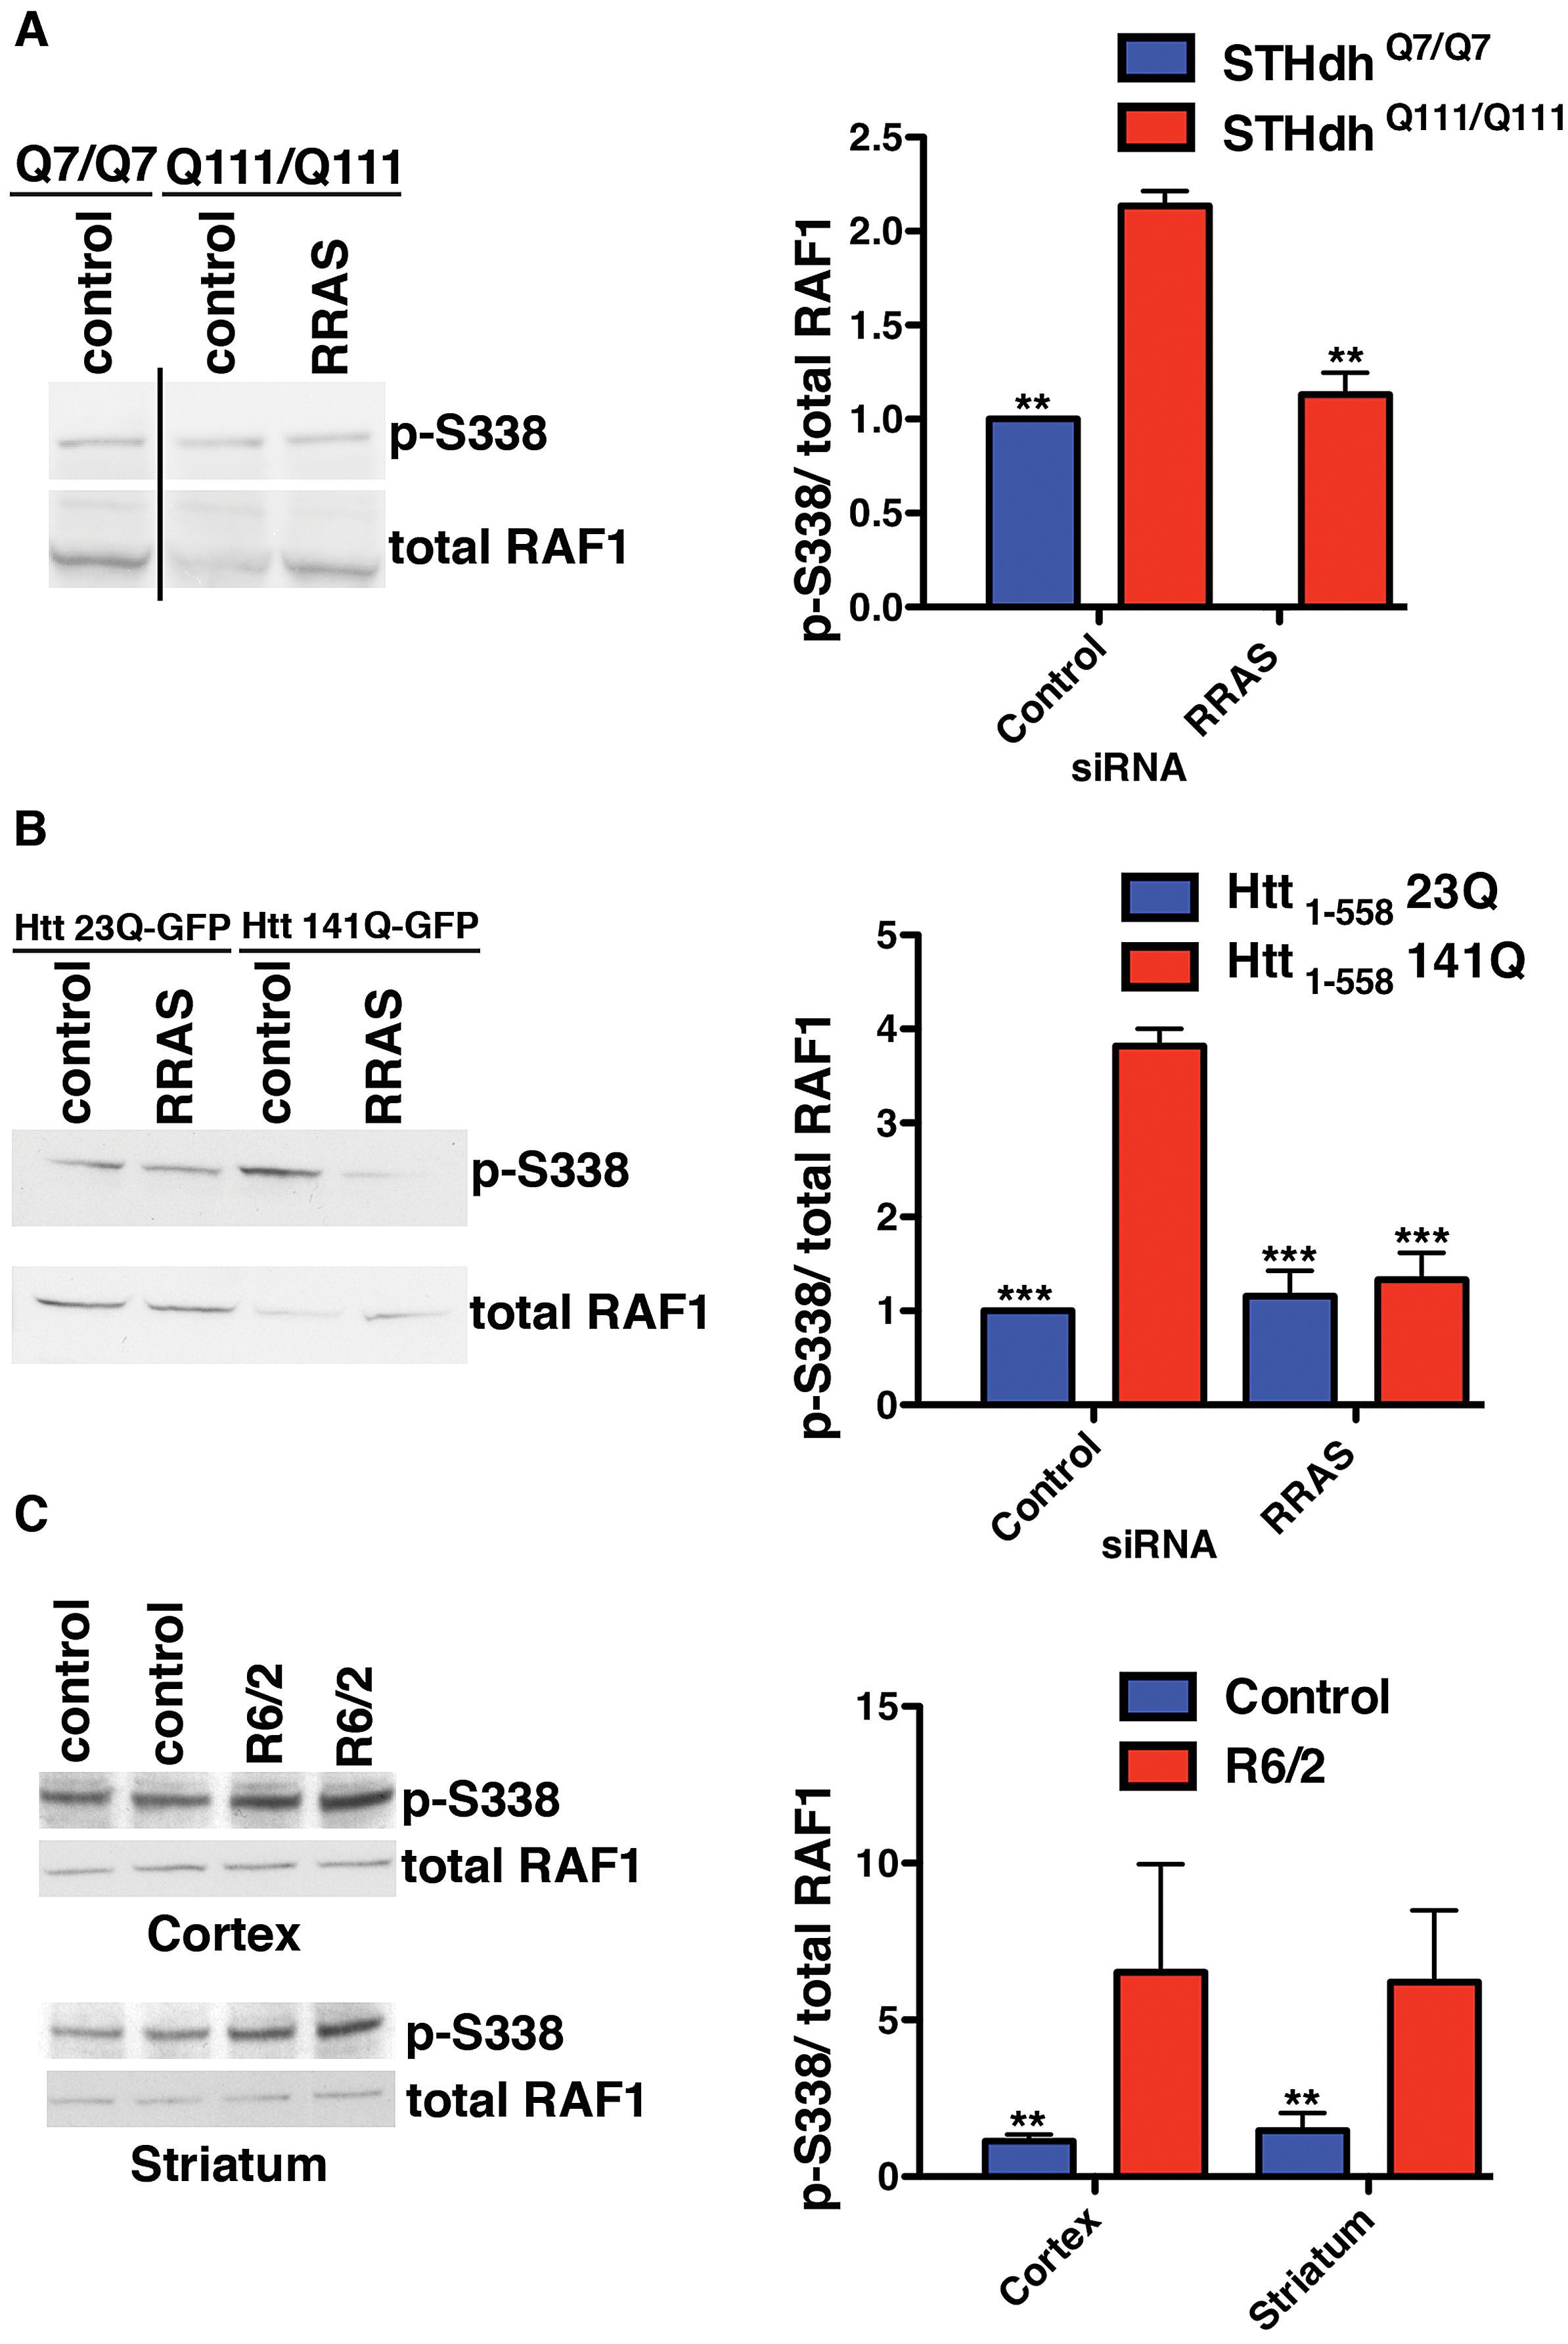 Altered RAF1 Phosphorylation in HD Models Is Rescued by RRAS Inhibition.